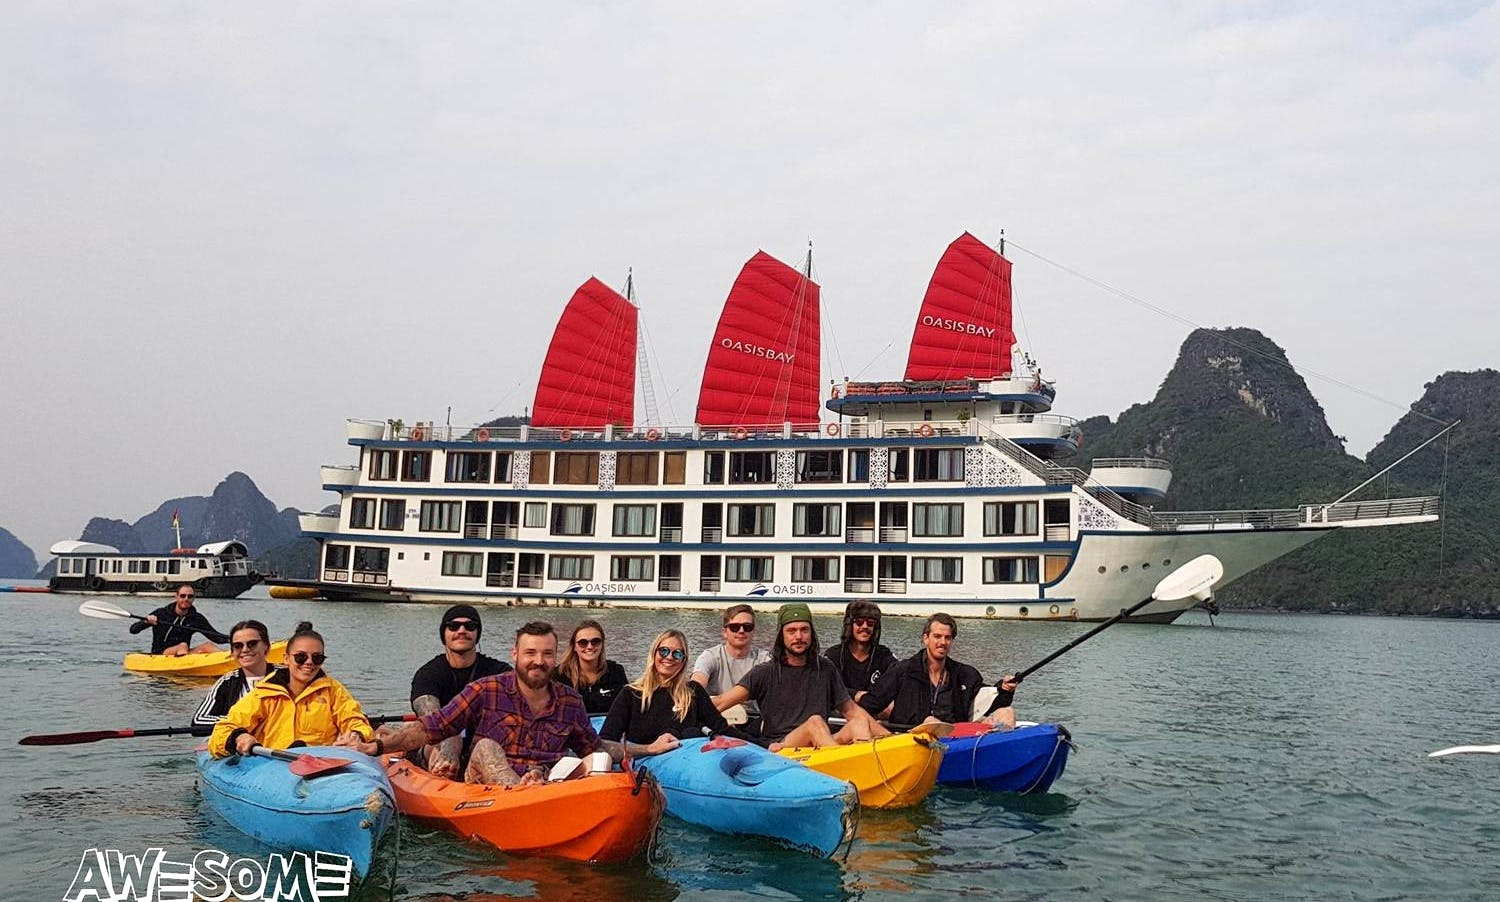 3 Days / 2 Nights Oasis Bay Party Cruise and Freedom Island